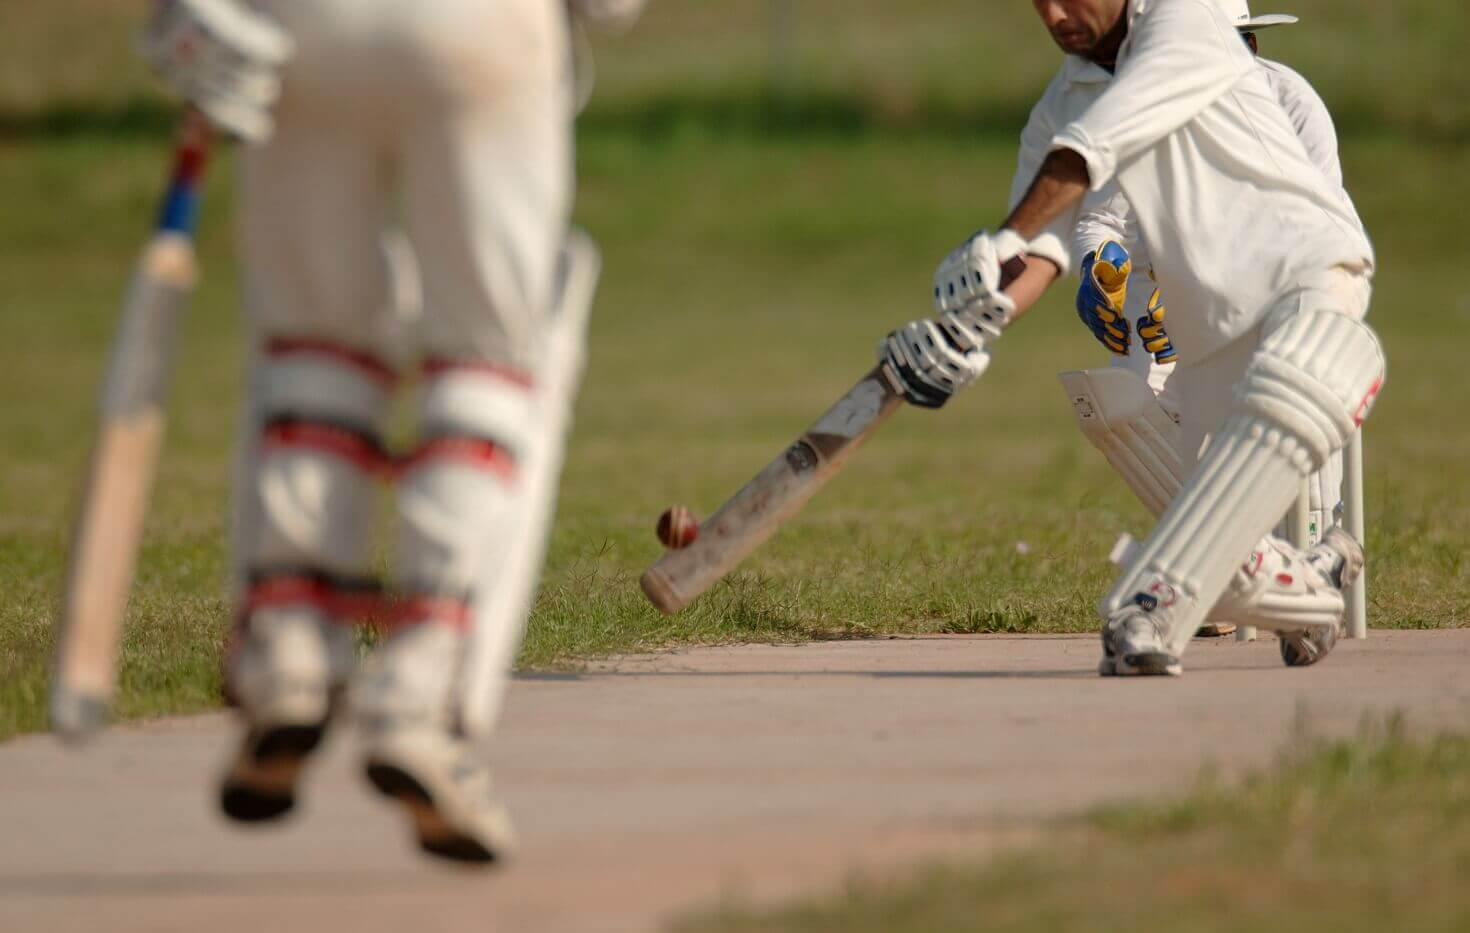 Cricket World Cup: Dealing with Sporting Events in the Workplace